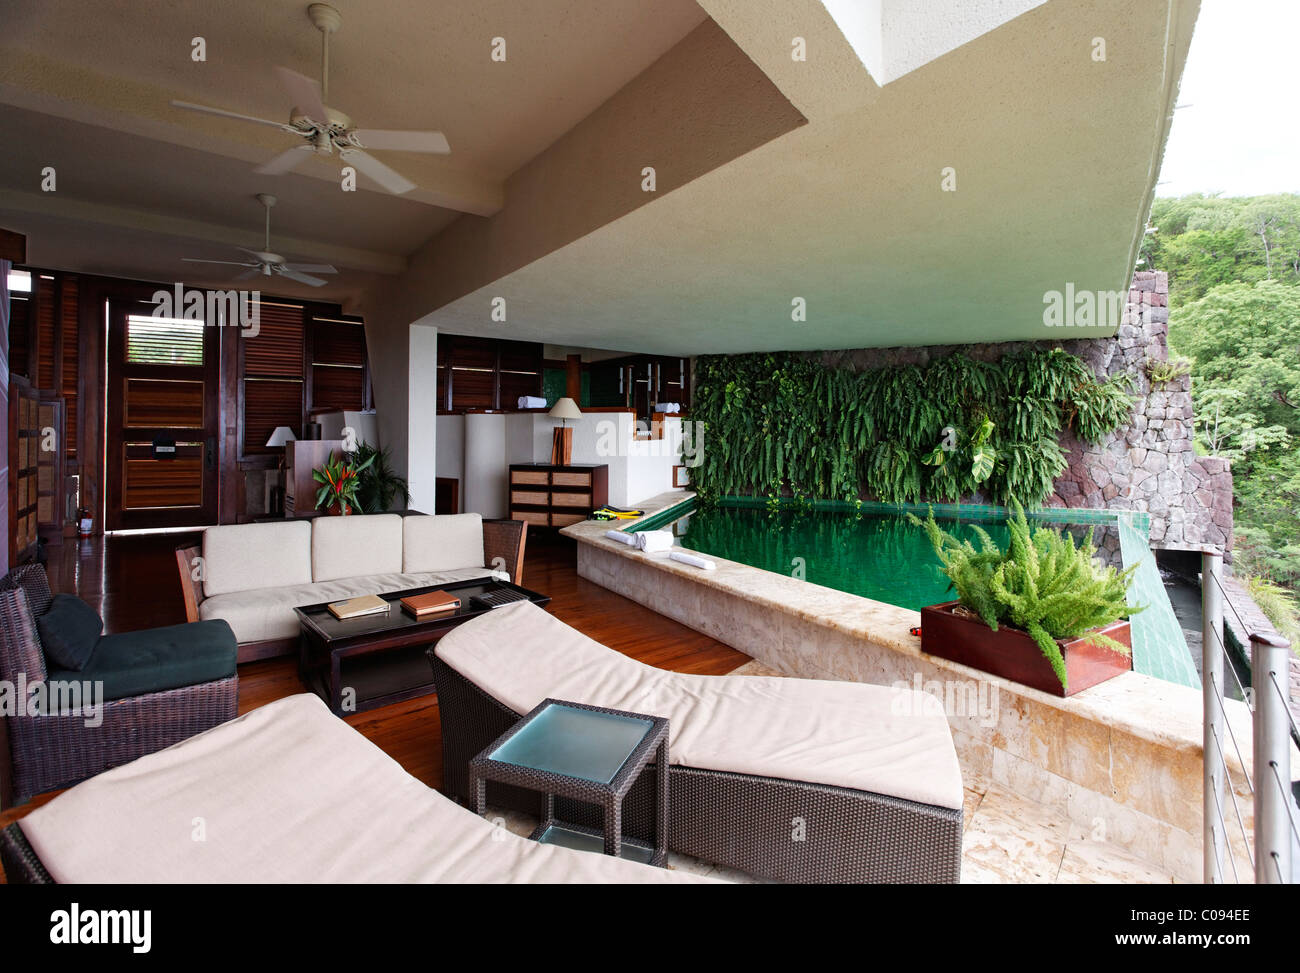 Suite, pas de mur extérieur, solarium, pool infinety, Jade Mountain Luxury hotel, Saint Lucia, îles du Photo Stock